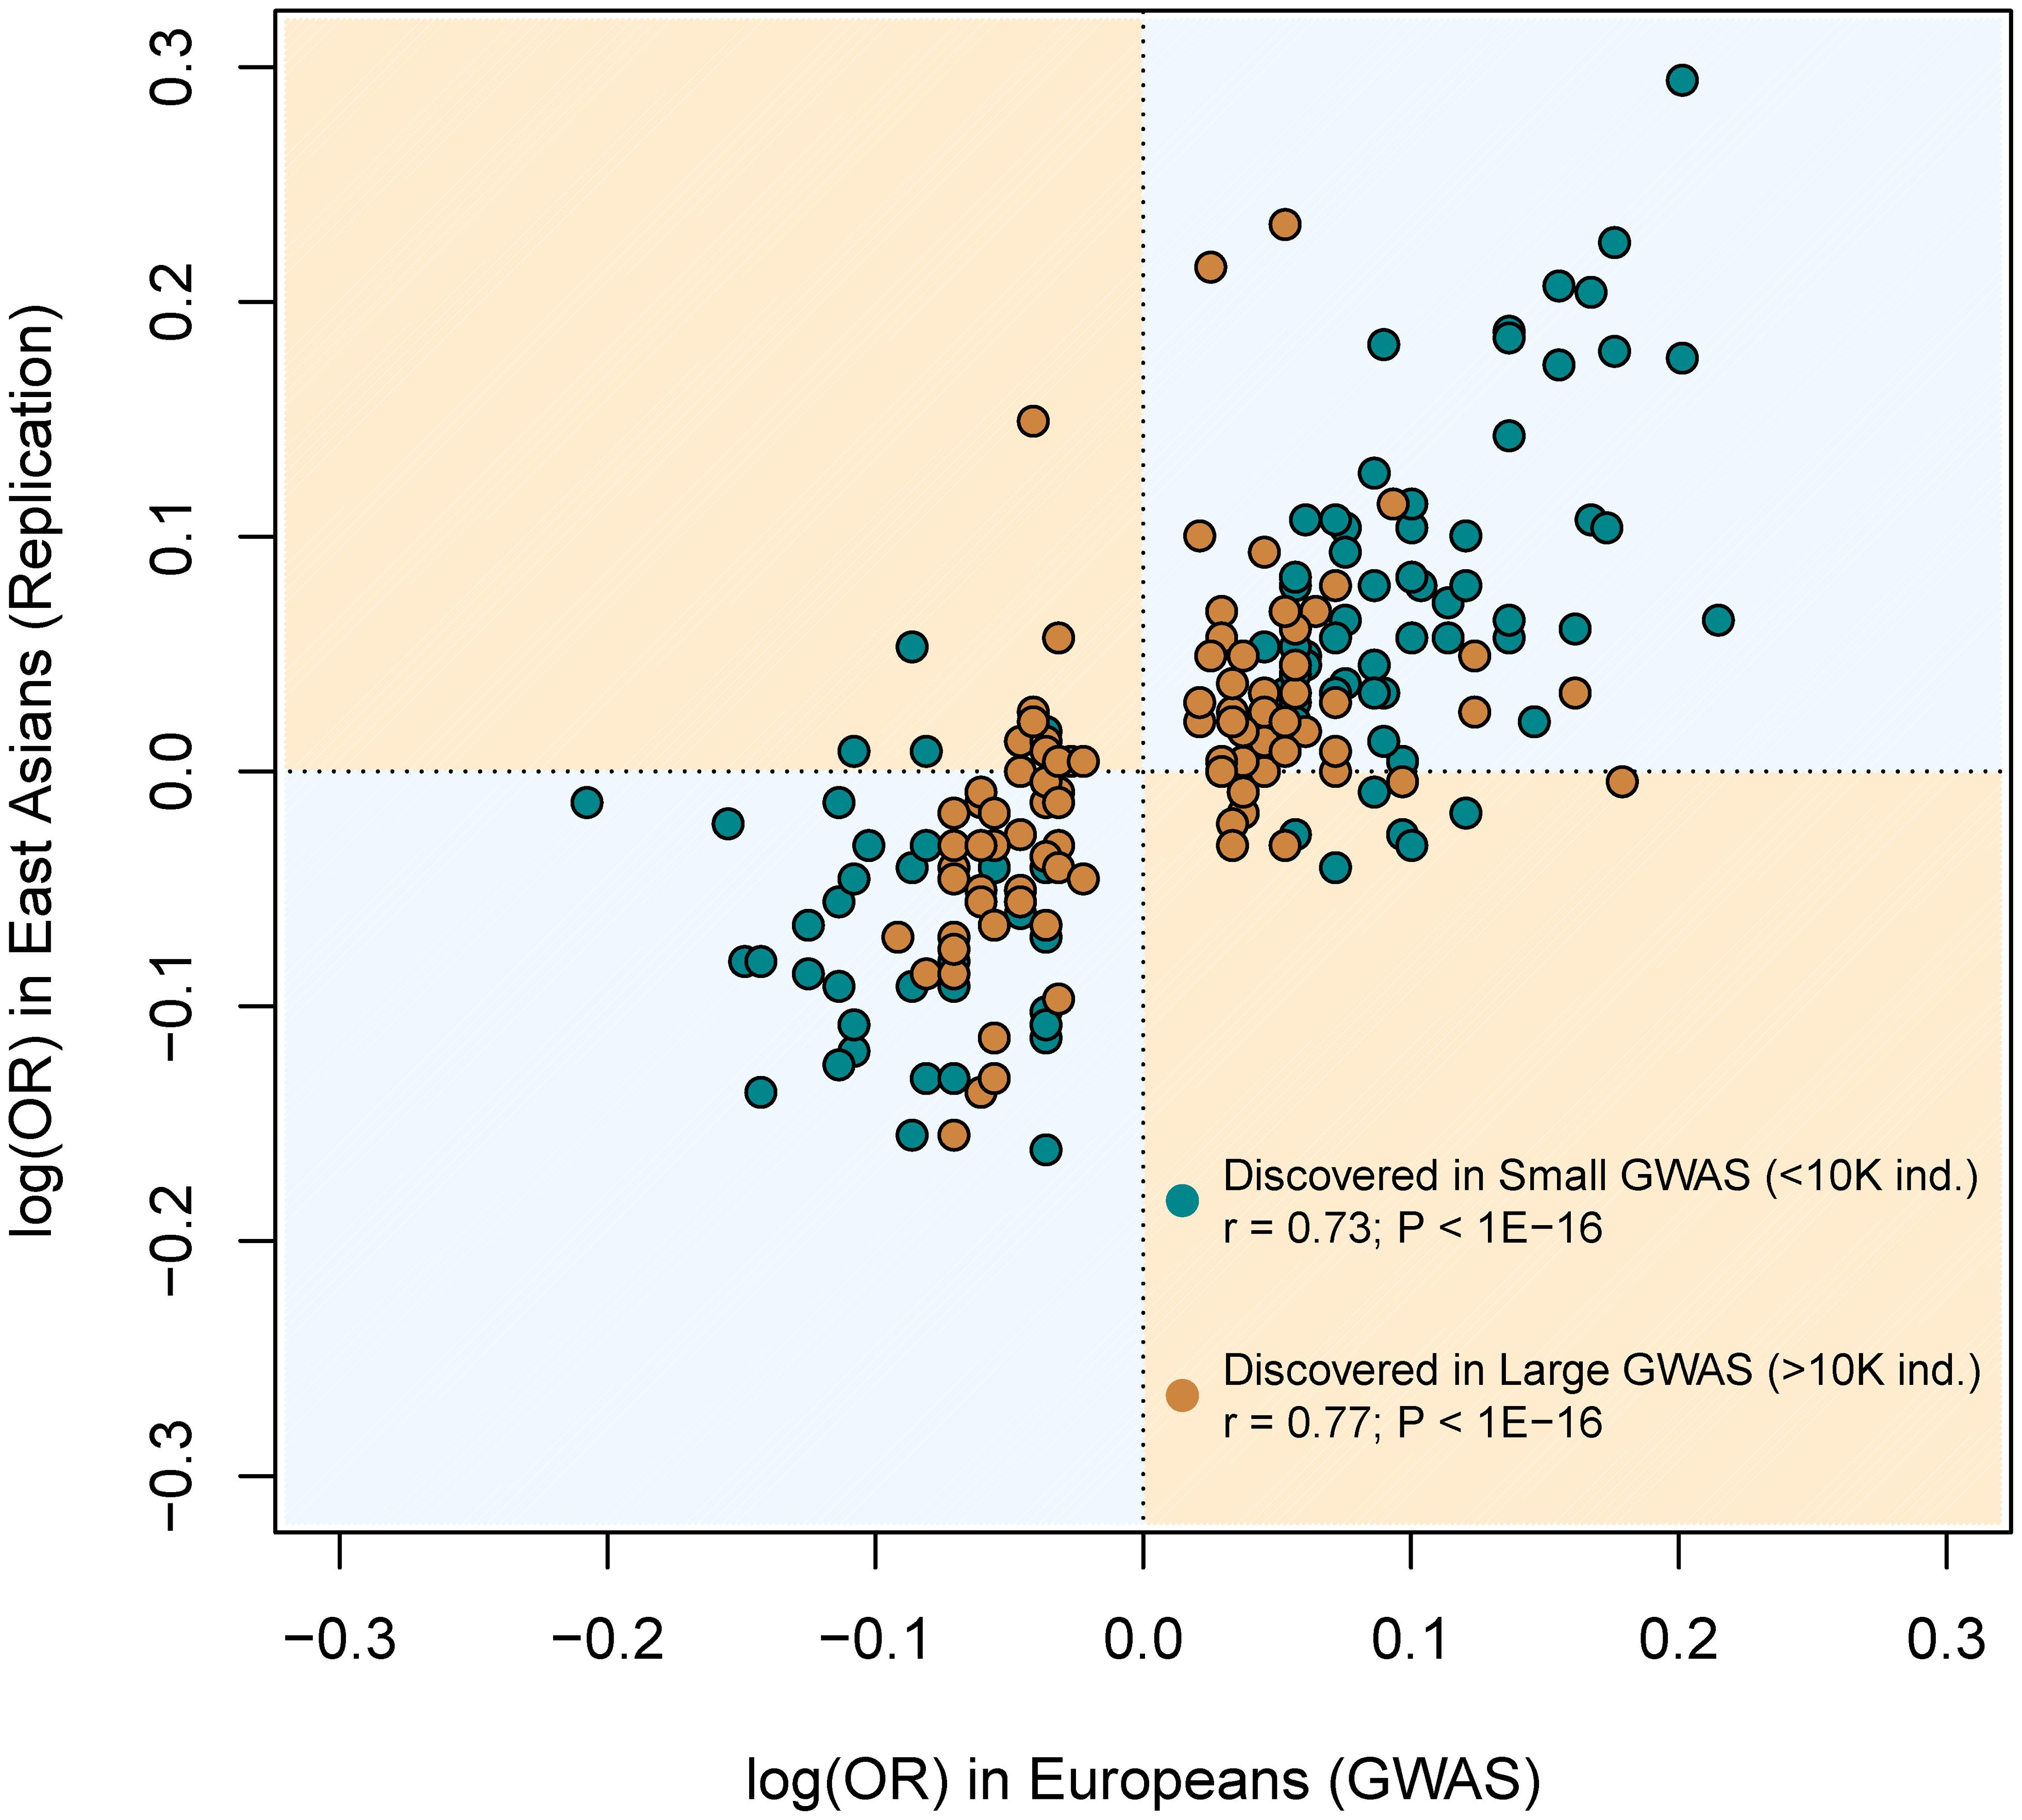 Similar correlation between European and East Asian log(OR), regardless of the discovery GWAS sample size.